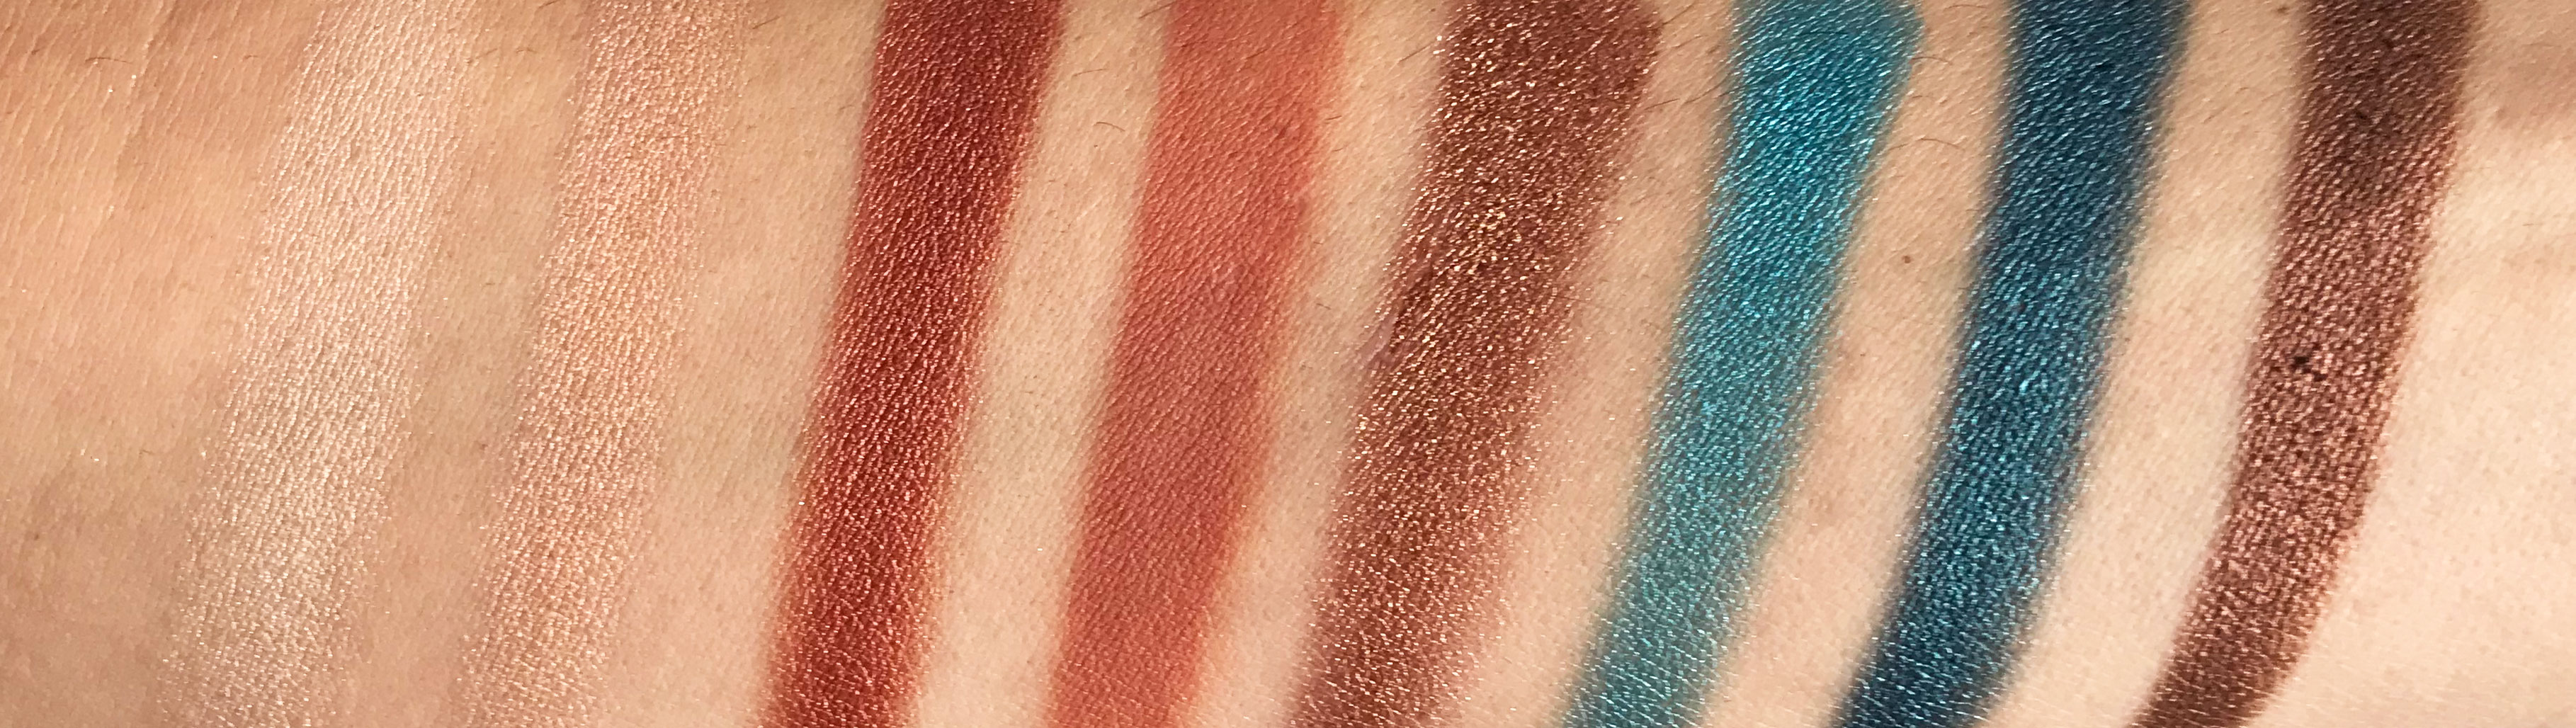 Beached Eyeshadow Palette by Urban Decay #19